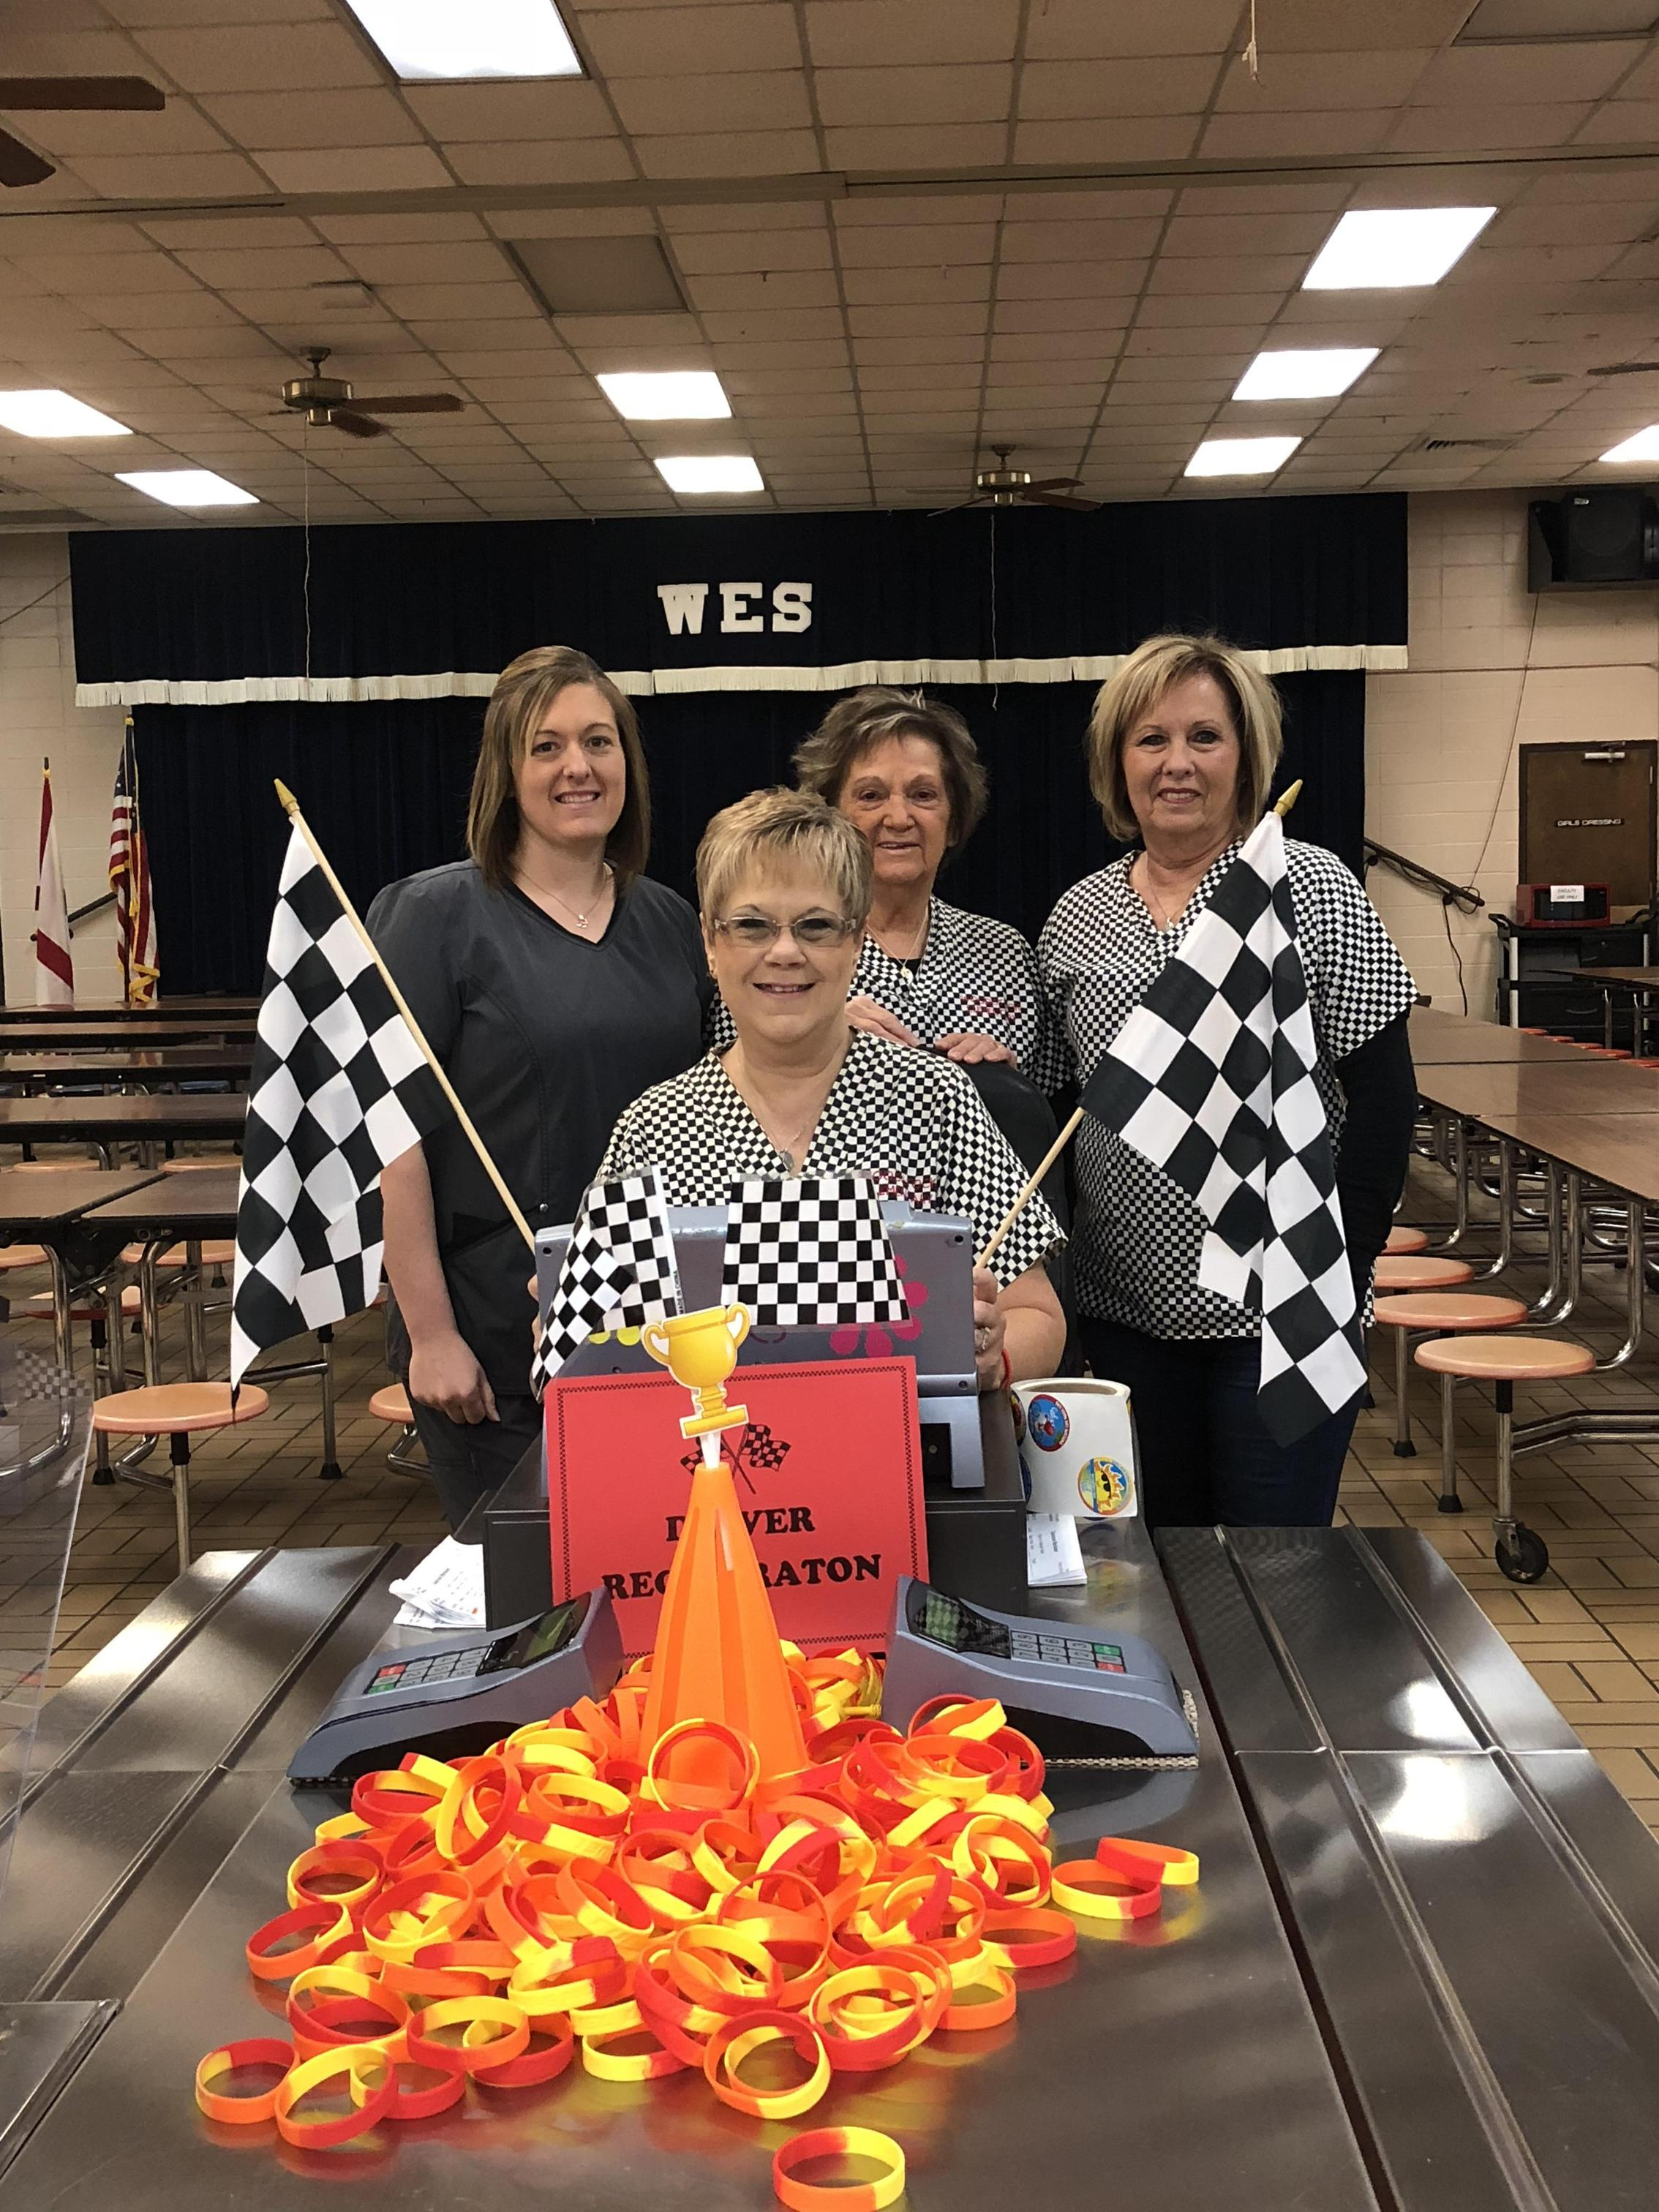 Woodstock lunchroom with their Racing theme for 2019-2020